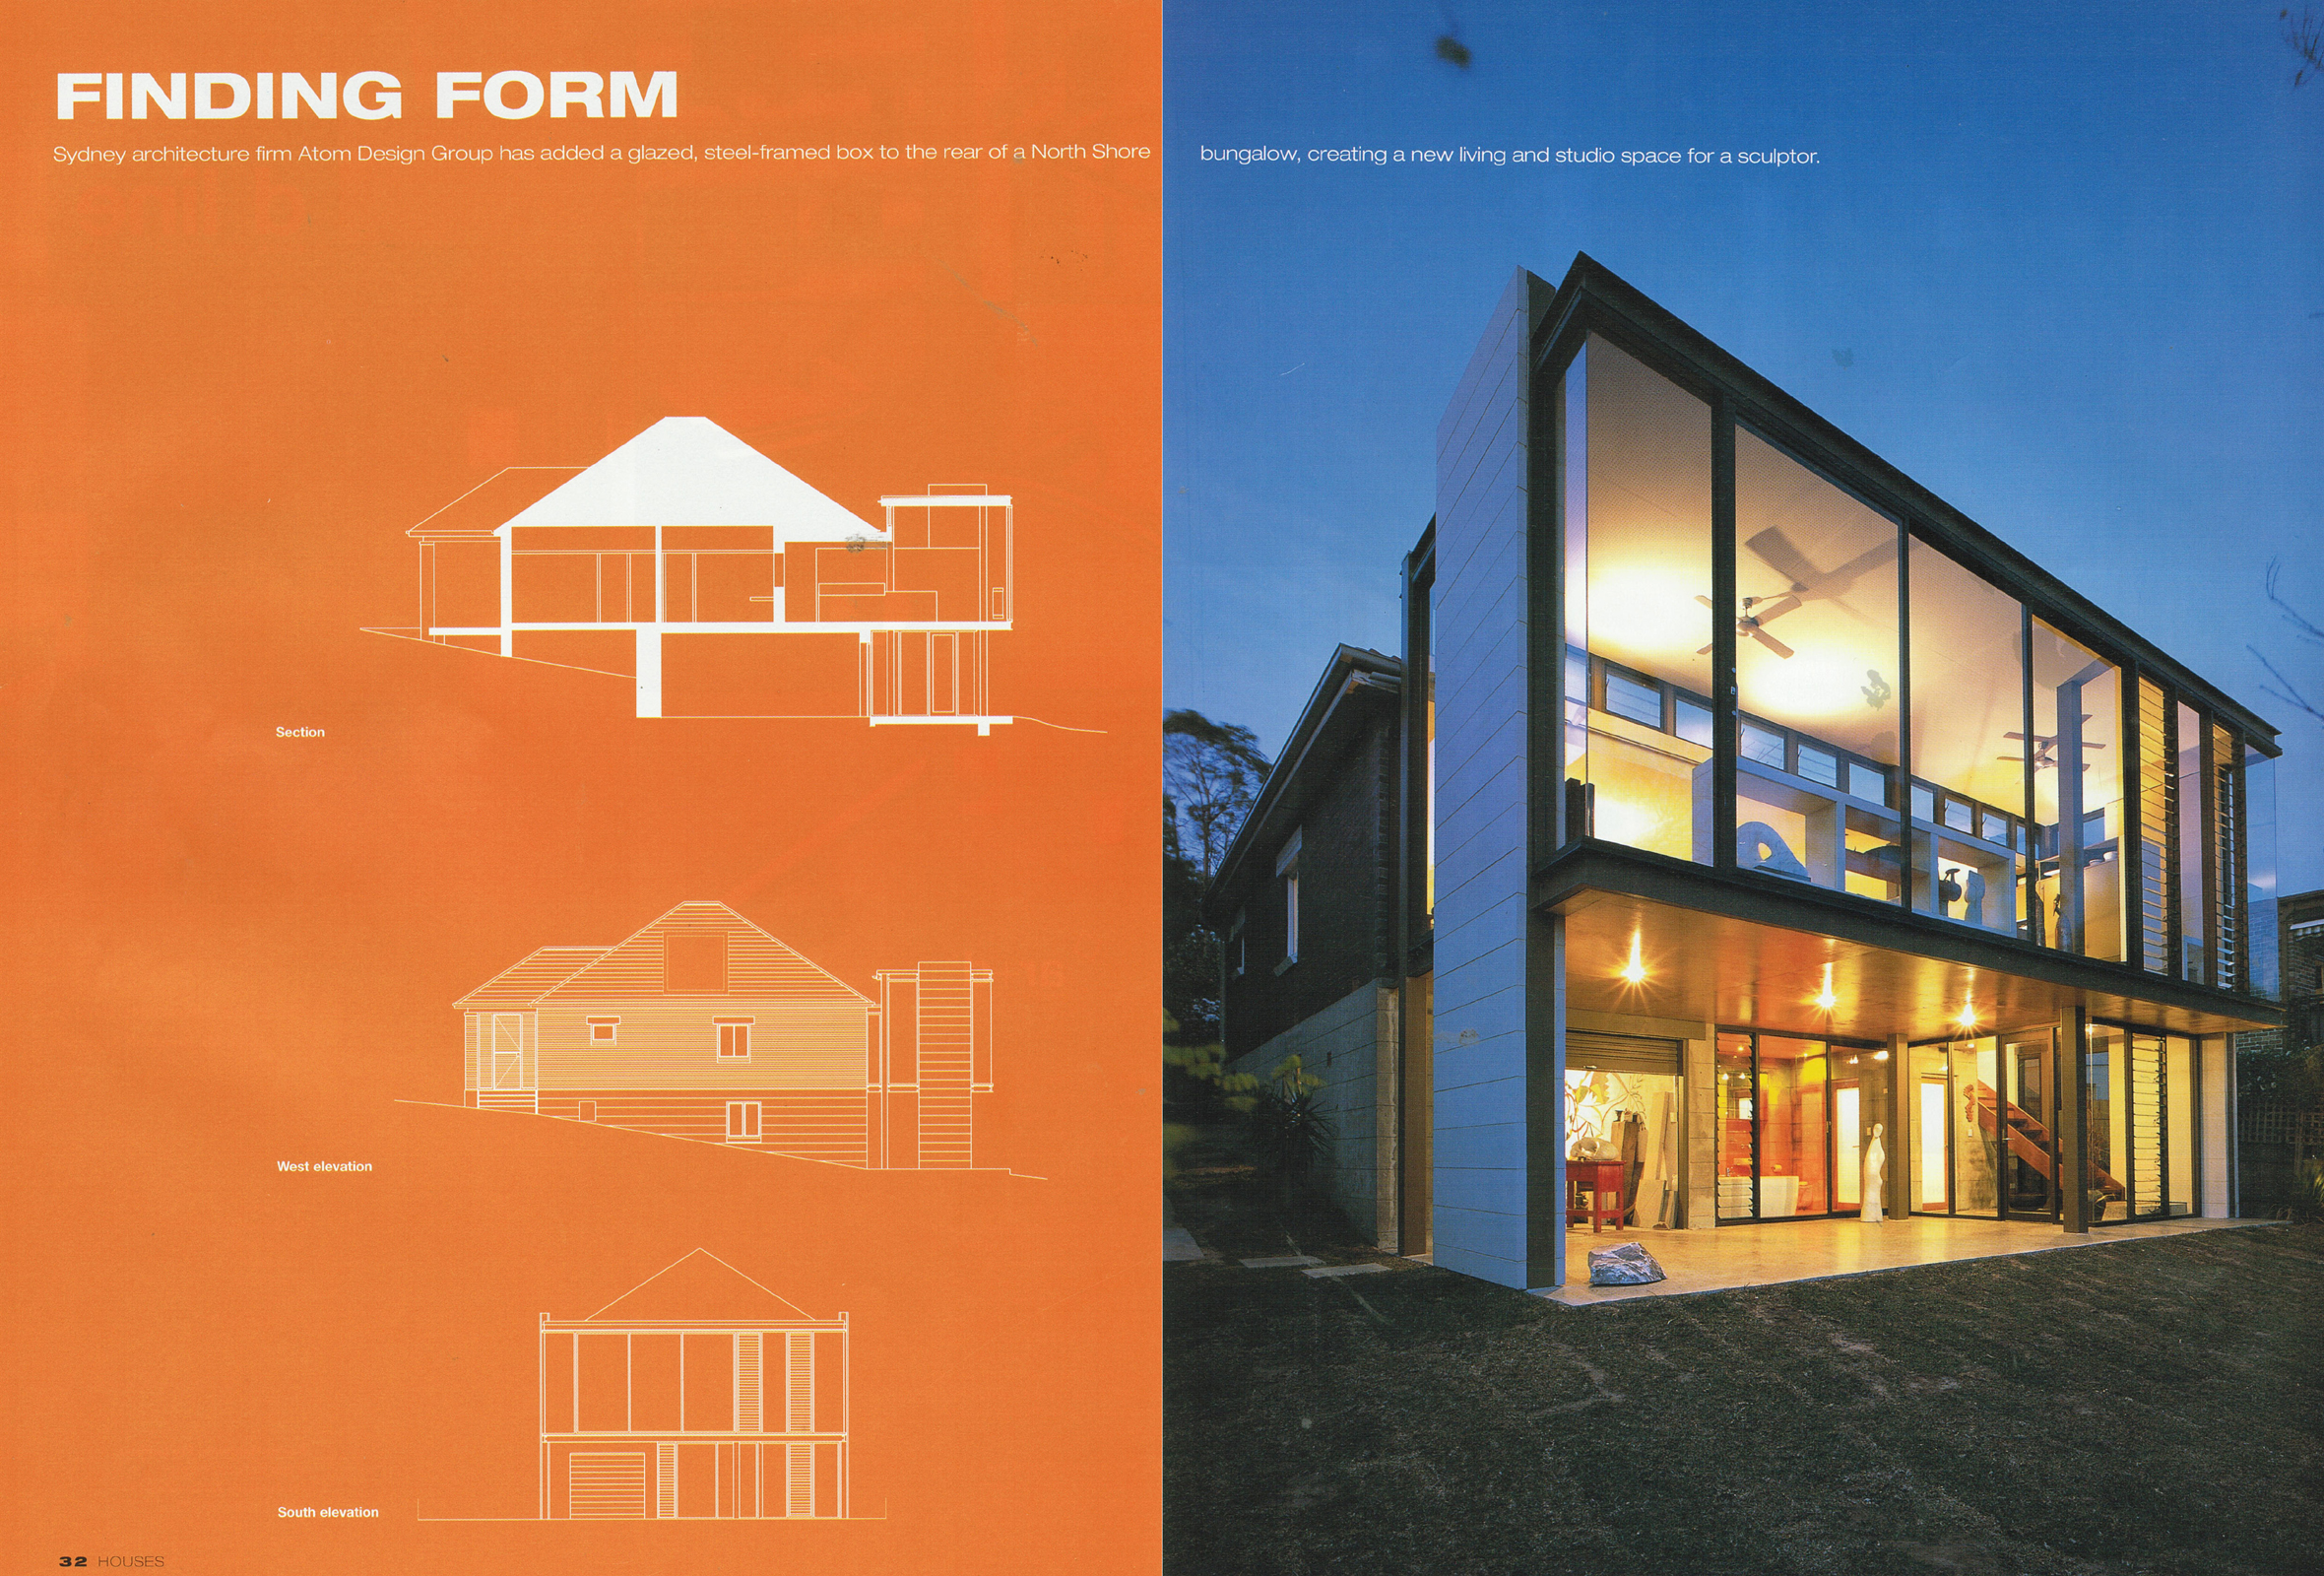 houses pages 32 & 33.jpg